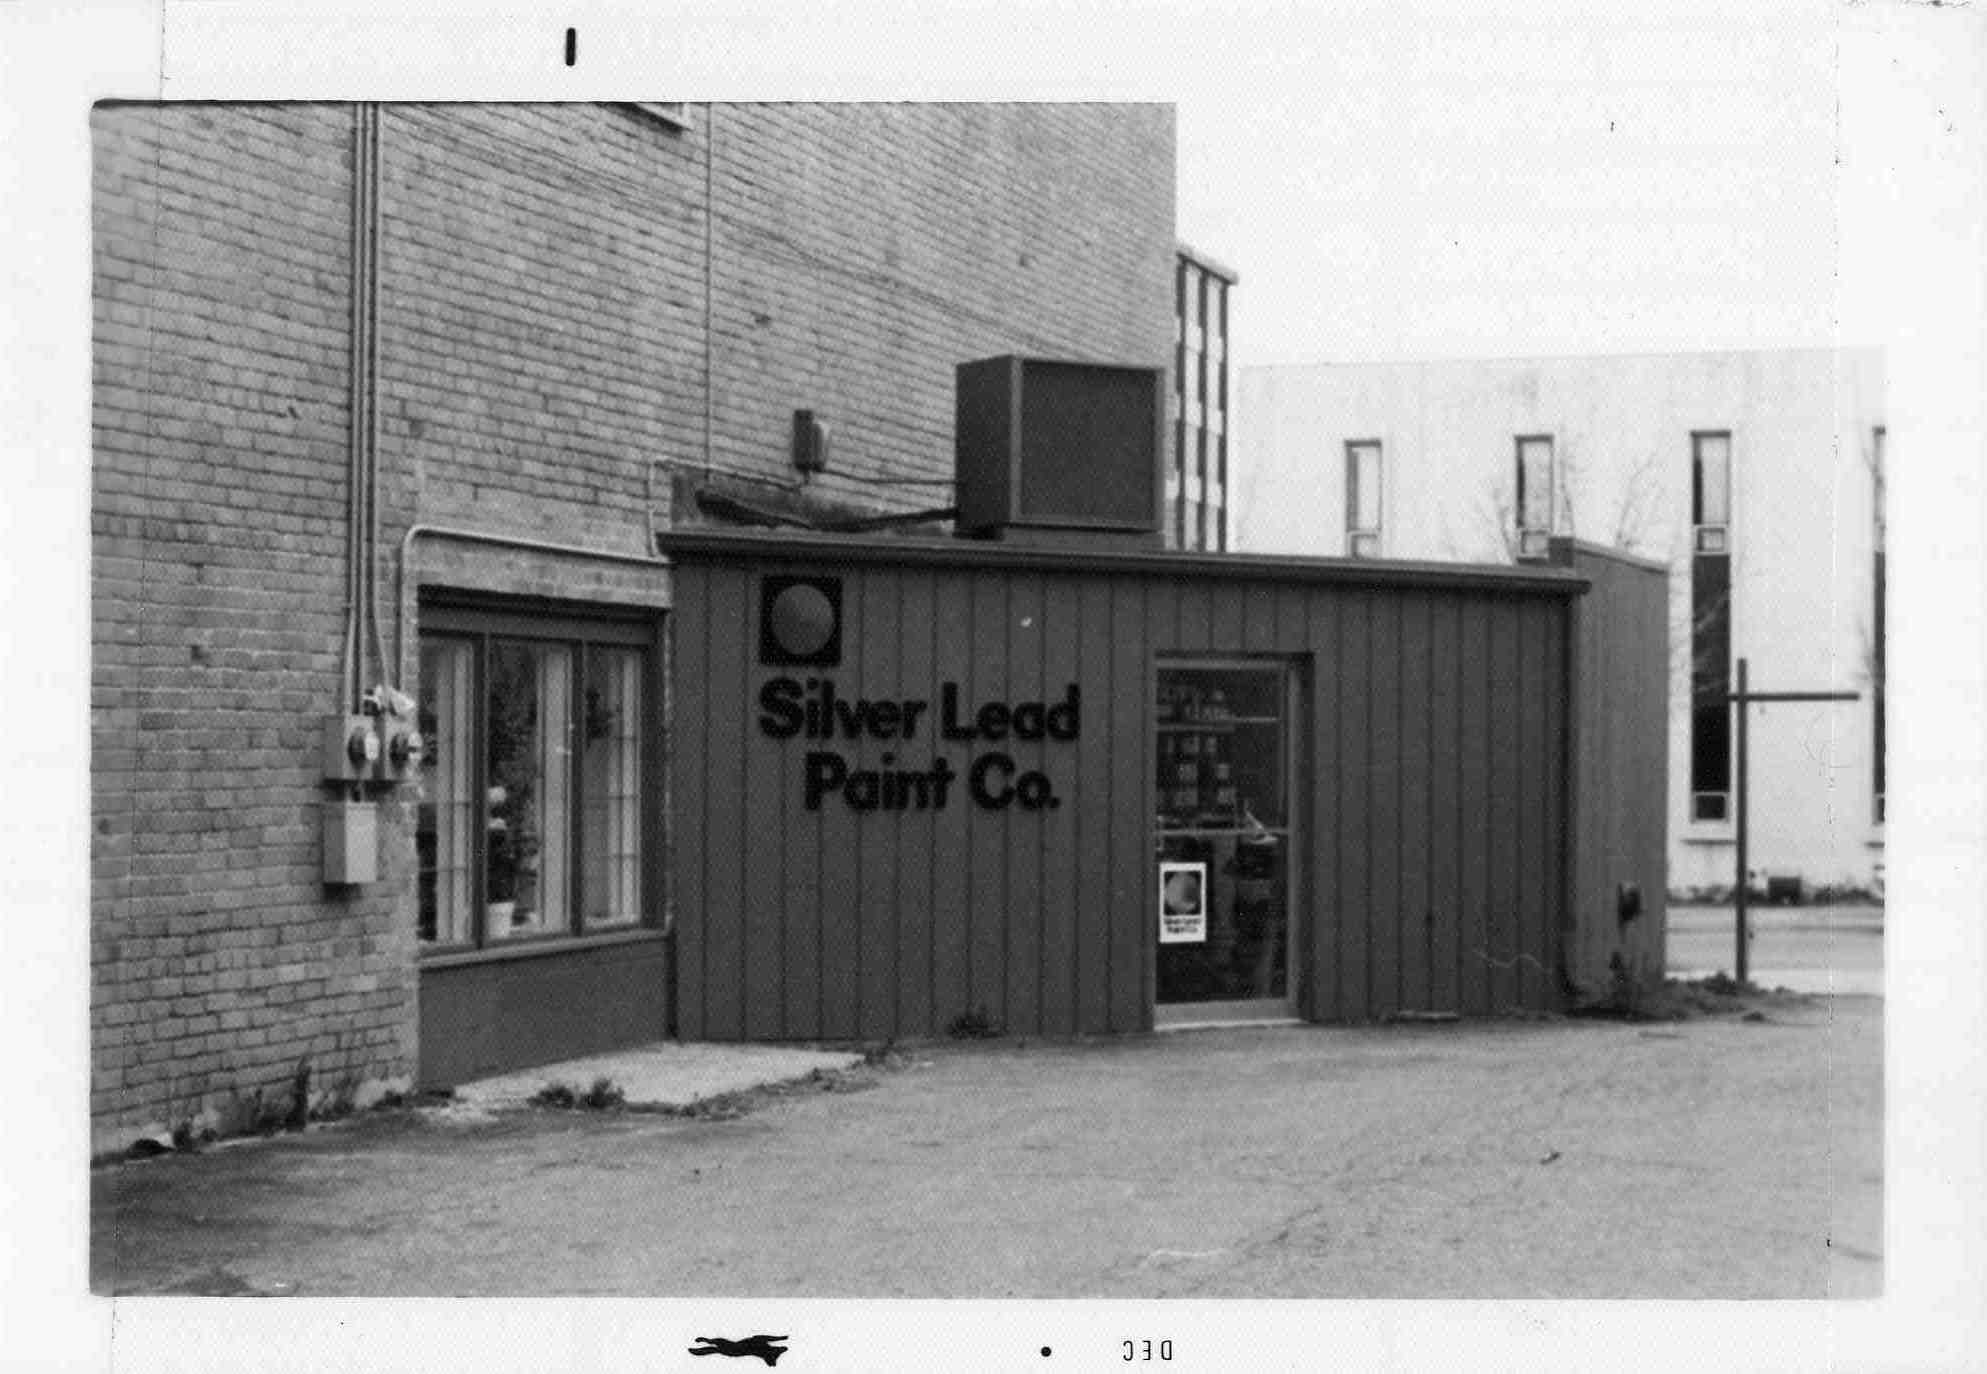 Silver Lead Paint Co., 1977 image